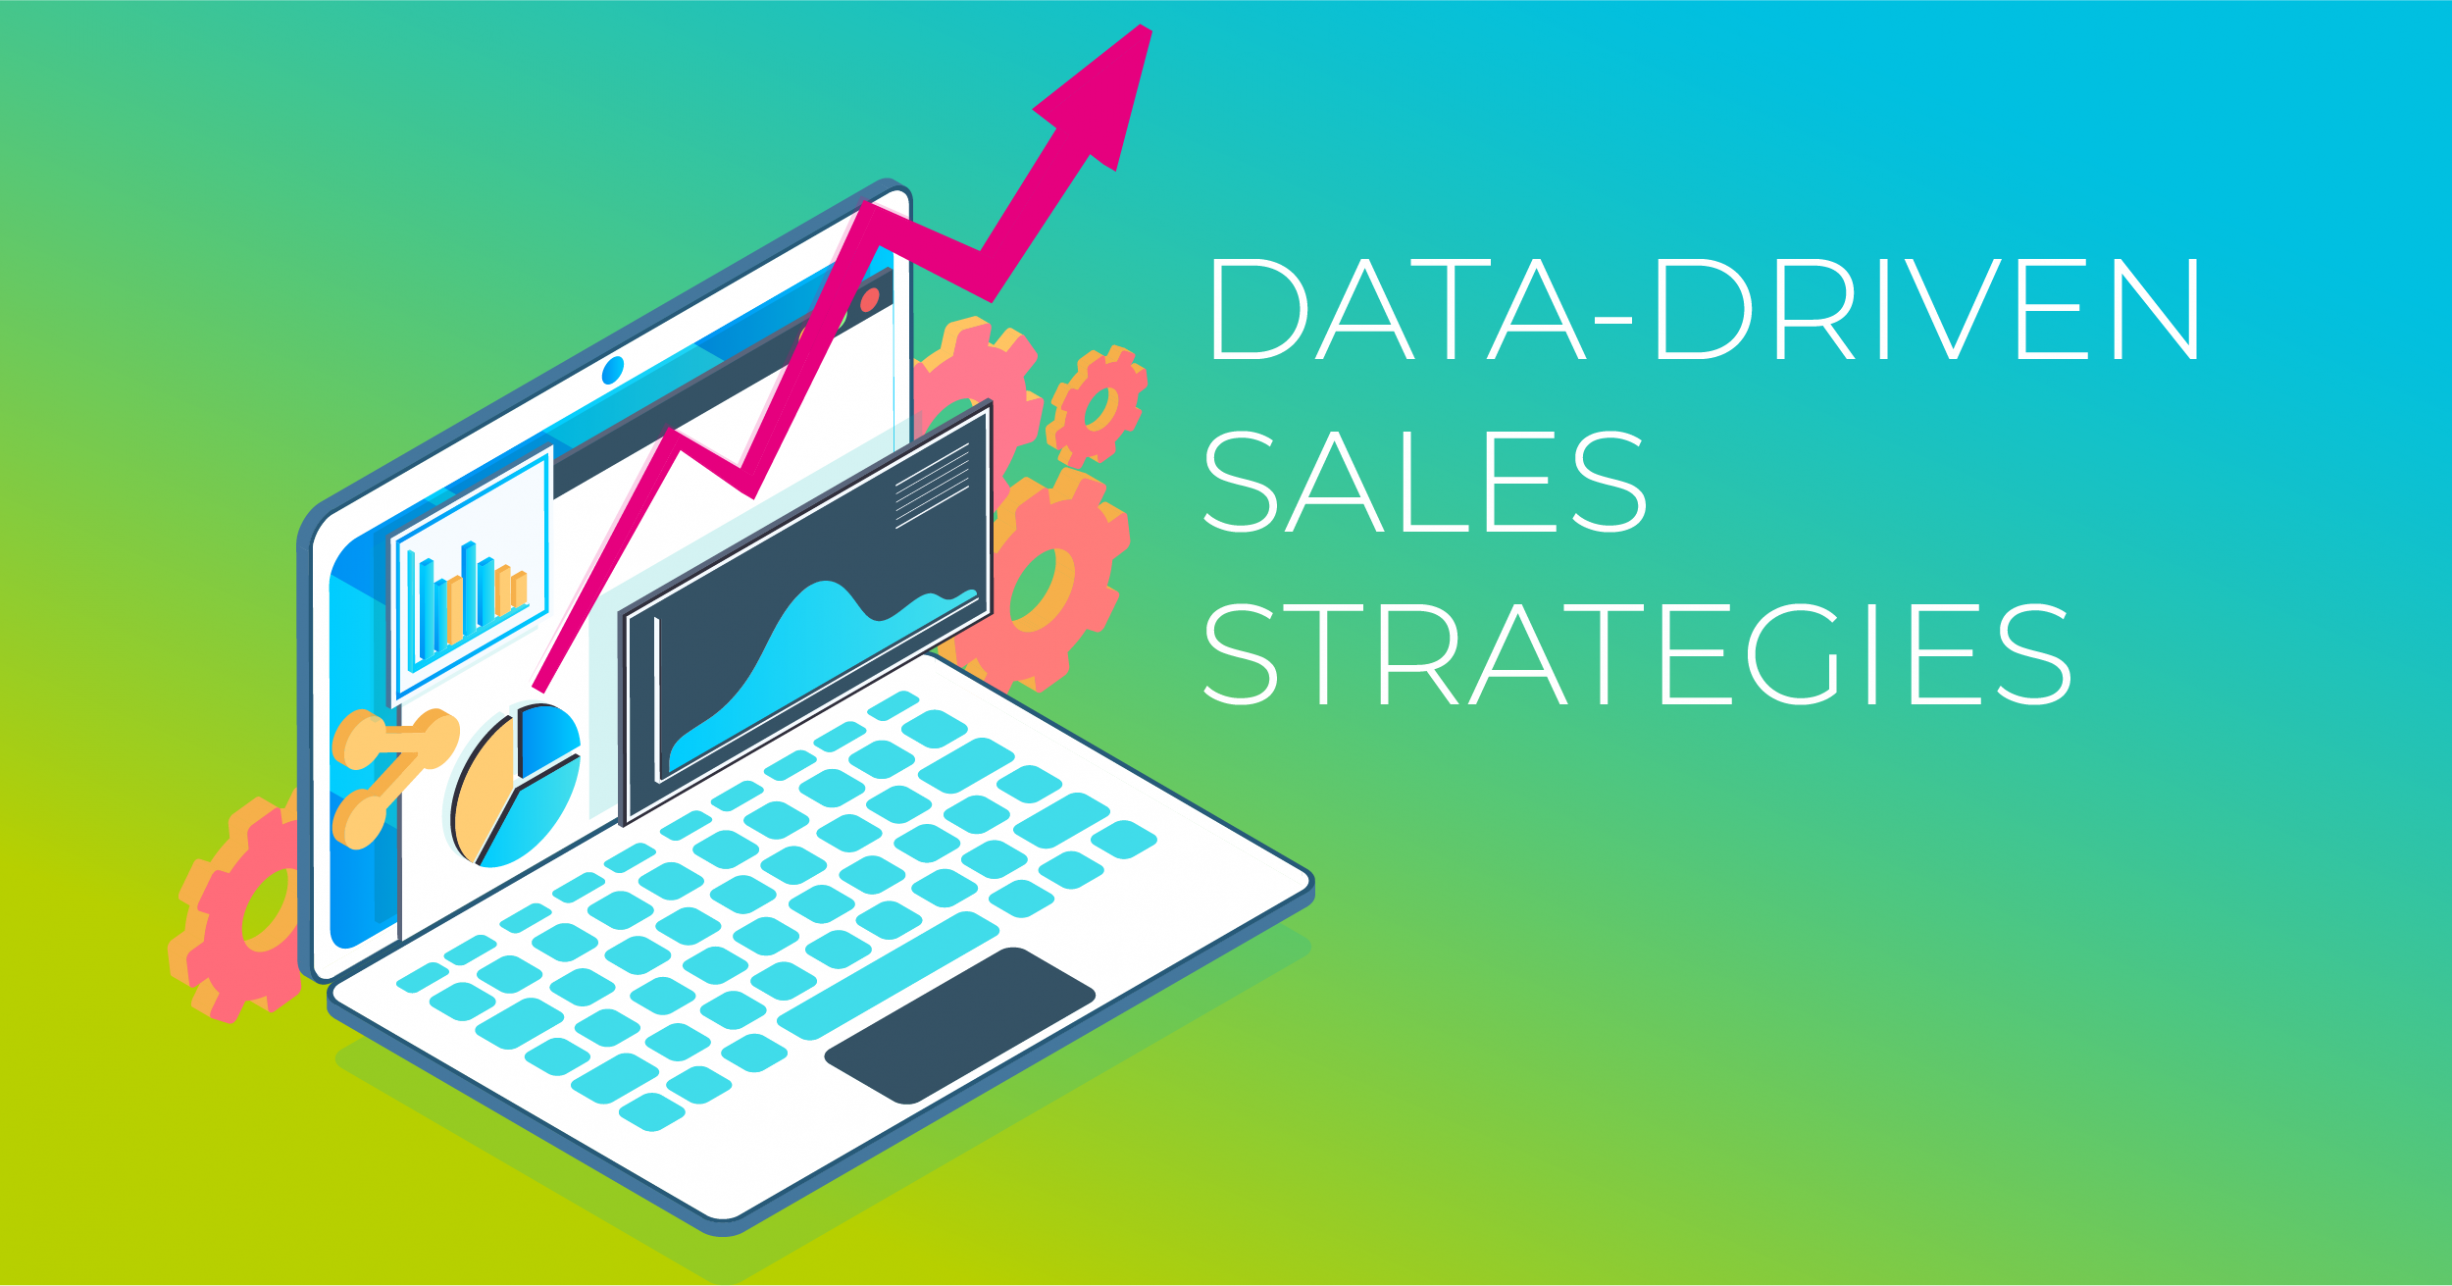 Data-driven sales strategy